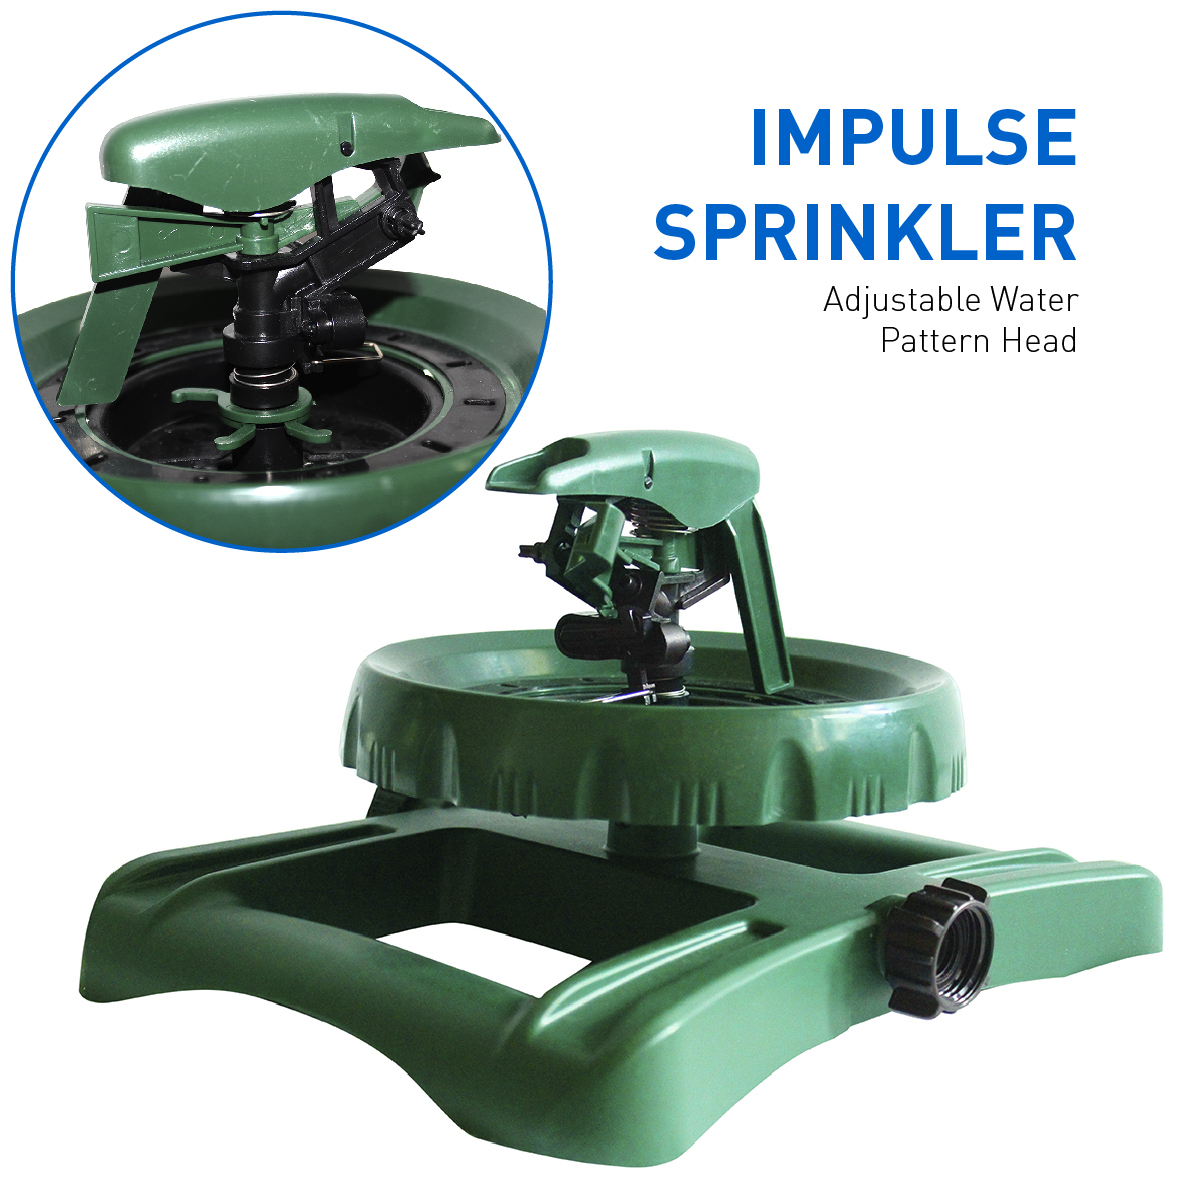 EasyGo Impulse Sprinkler with Adjustable Water Pattern Head with Long Range Lawn and... by EasyGo Products